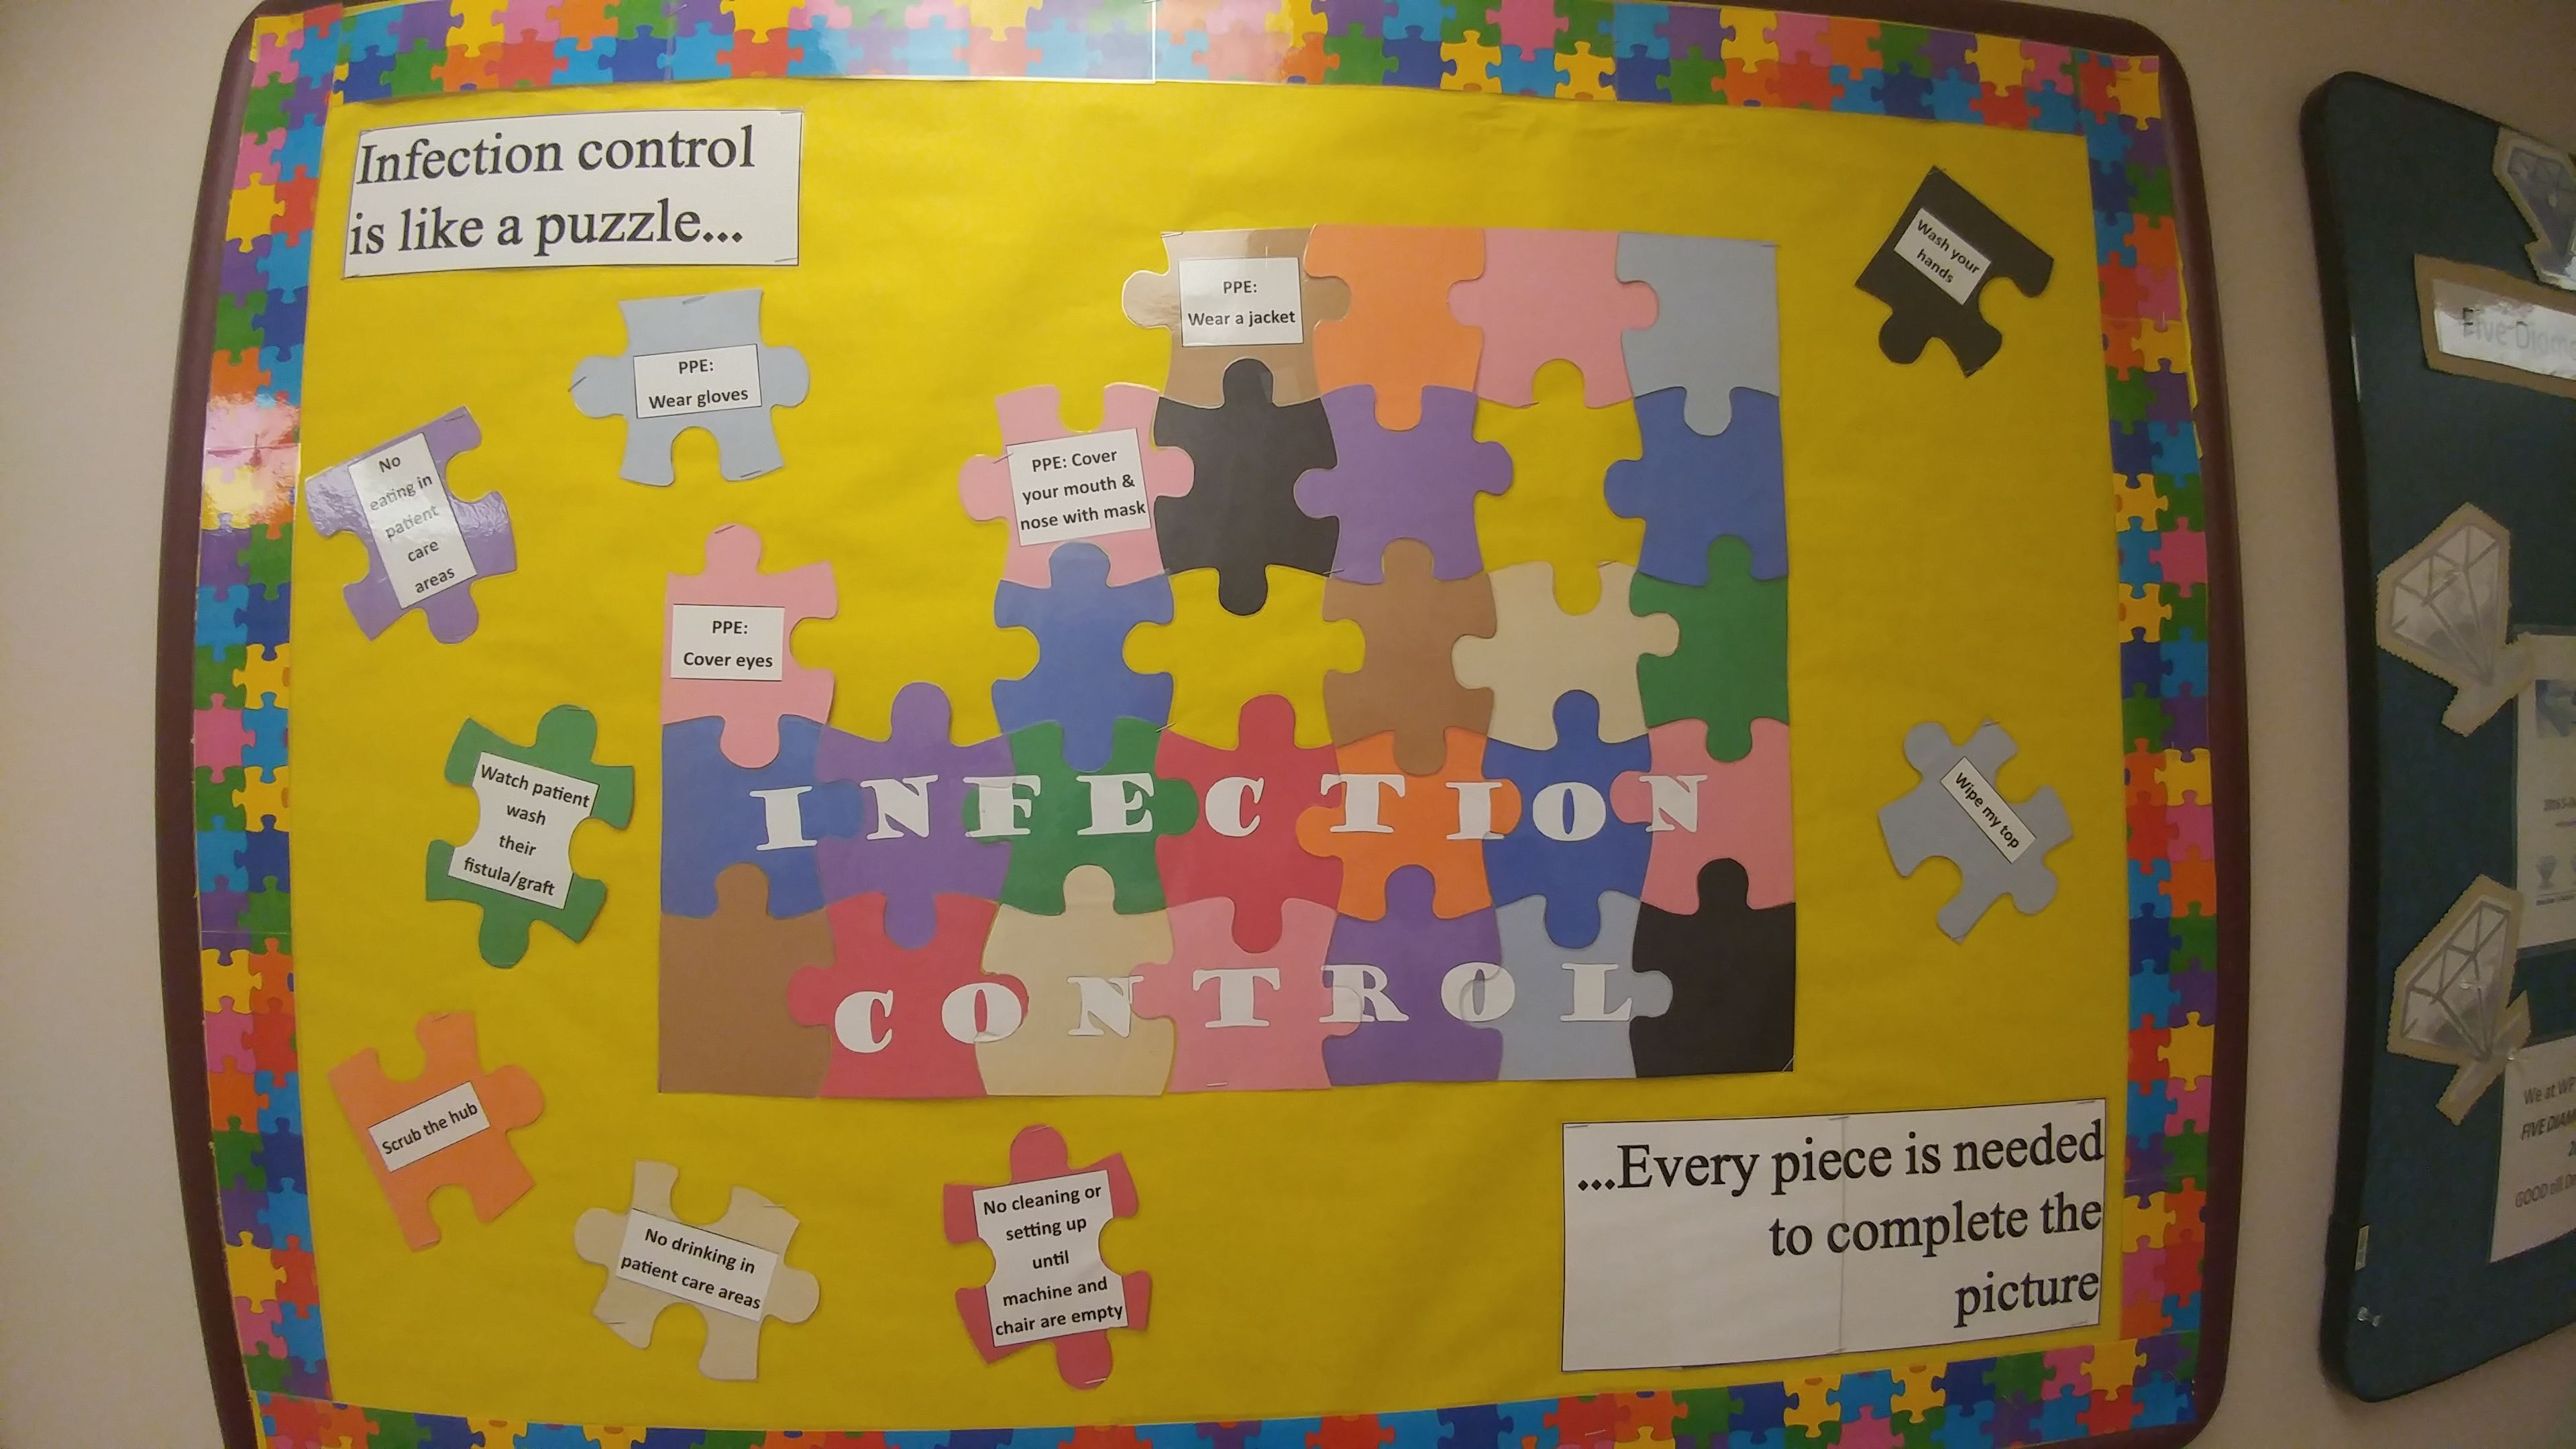 Dialysis Infection Control Is Like A Puzzle Infection Control